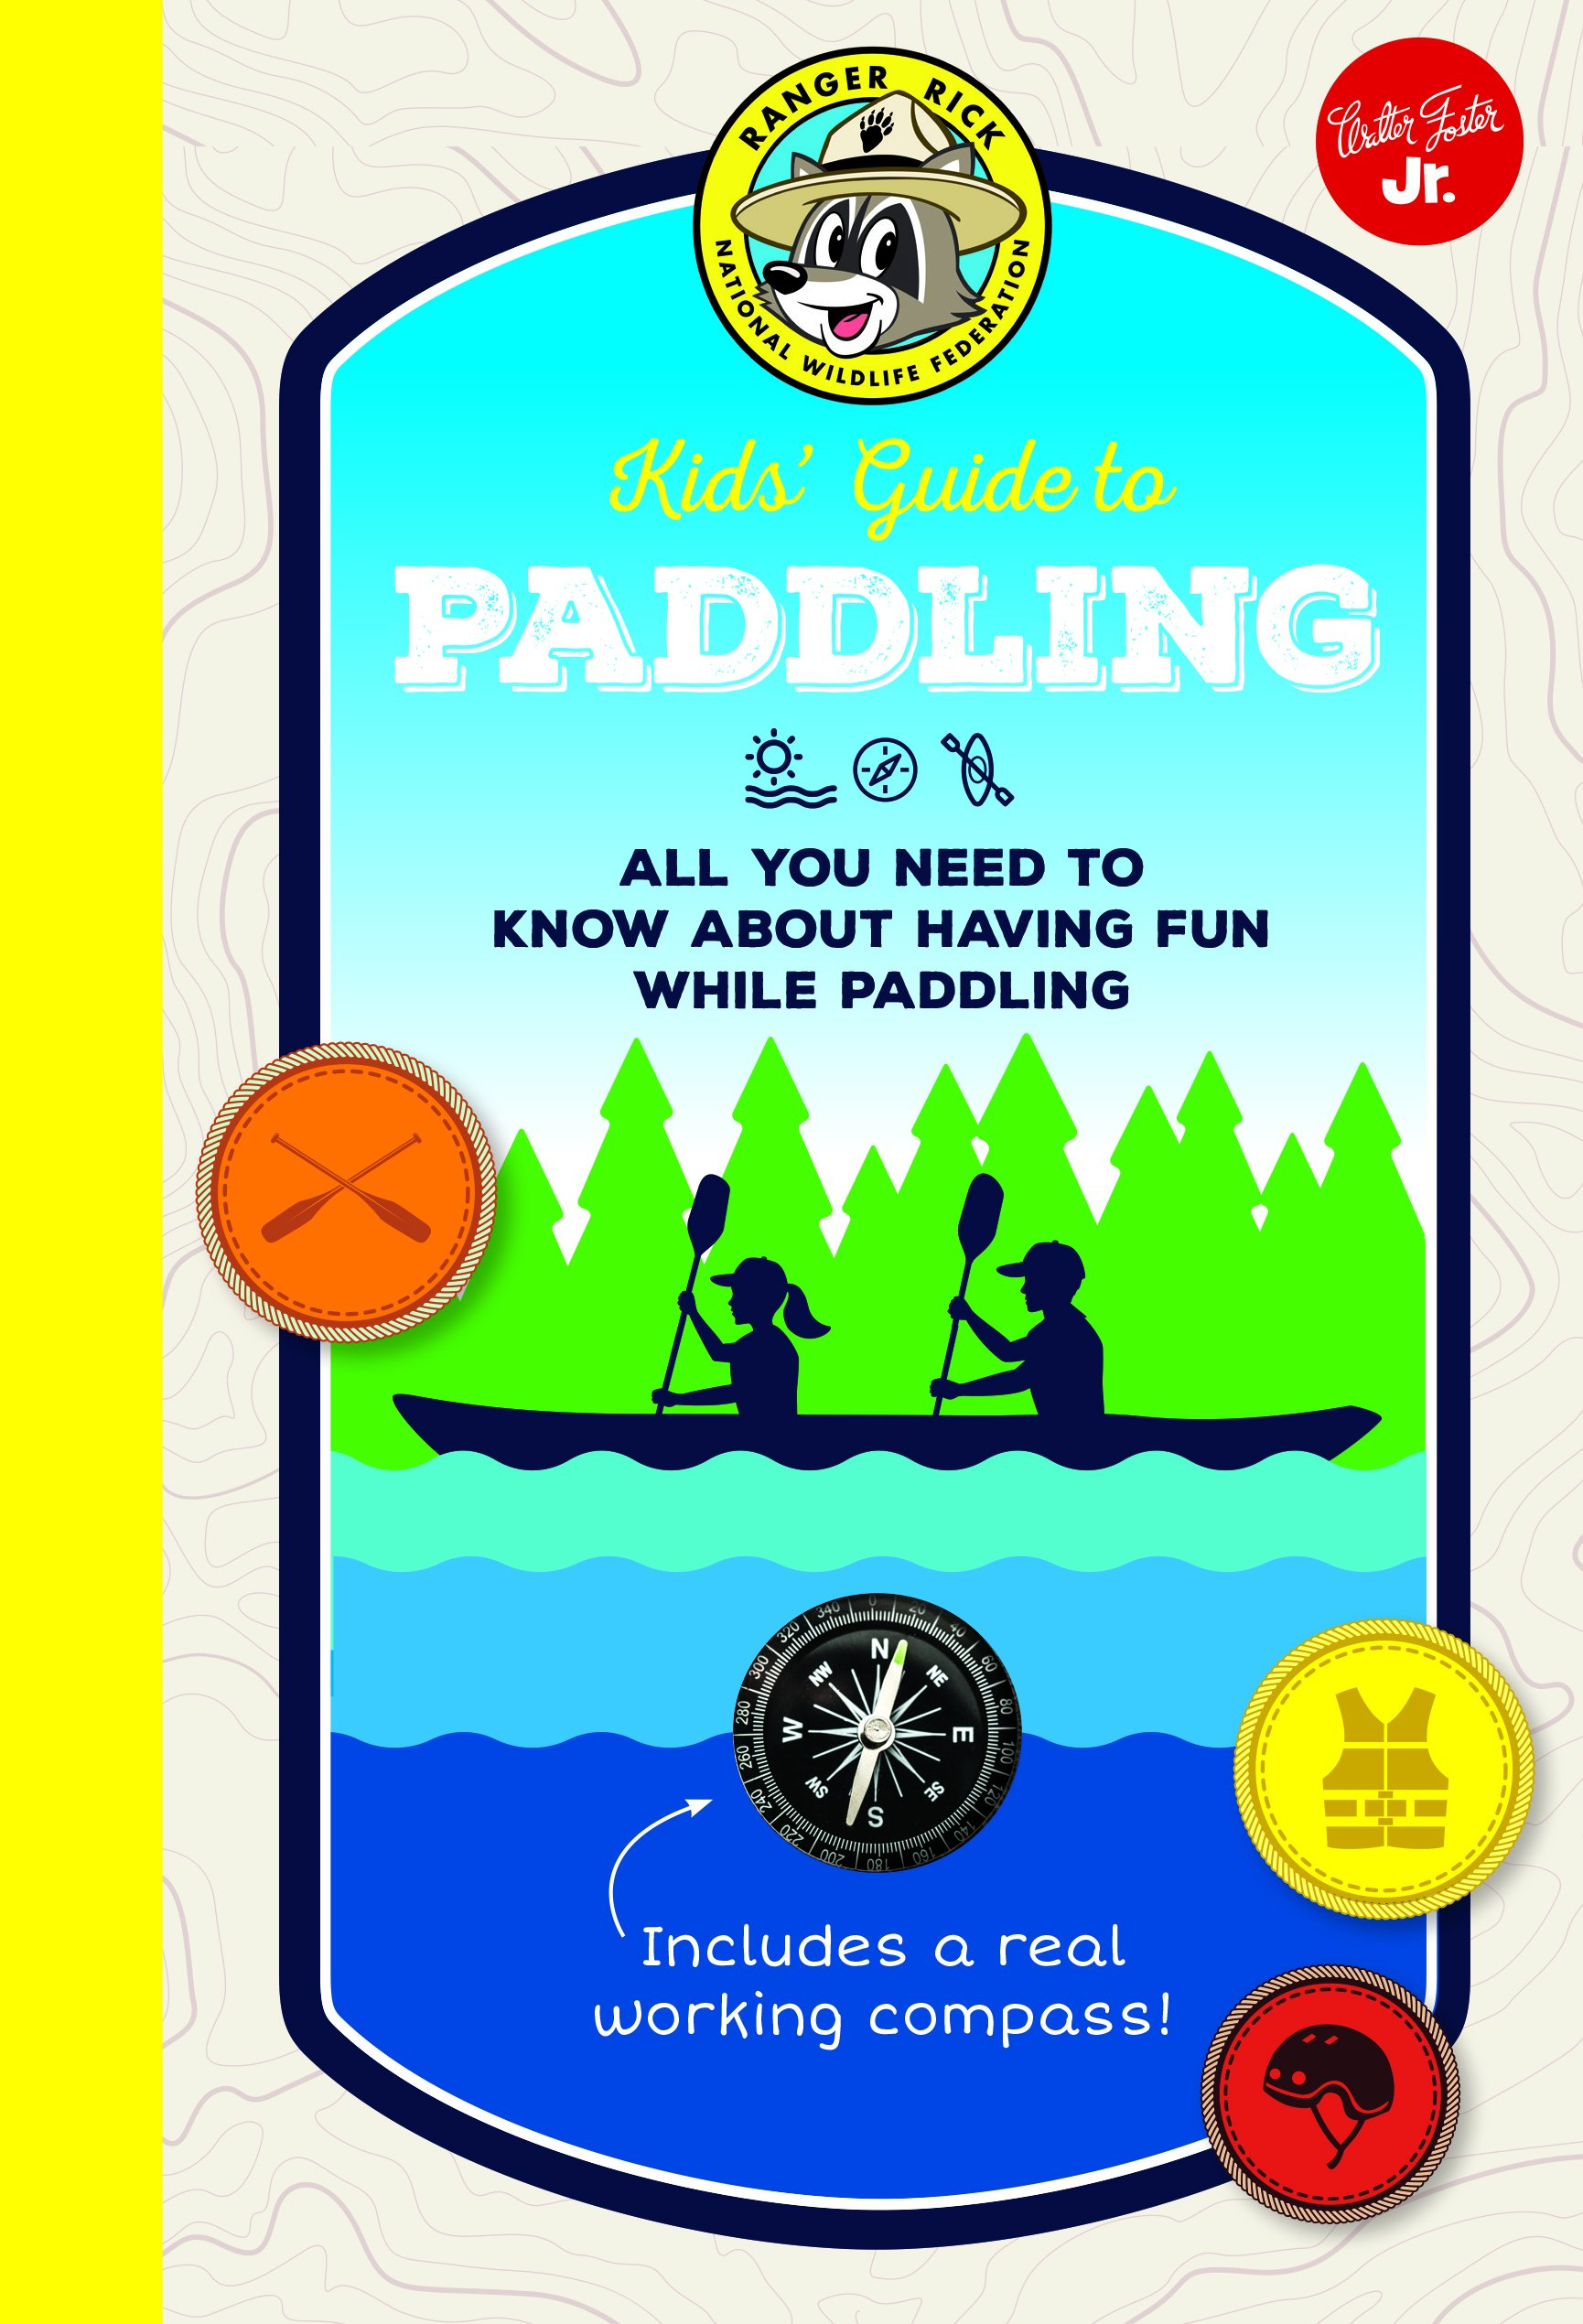 Ranger Rick Kids' Guide to Paddling: All you need to know about having fun while paddling (Ranger Rick Kids' Guides) ebook